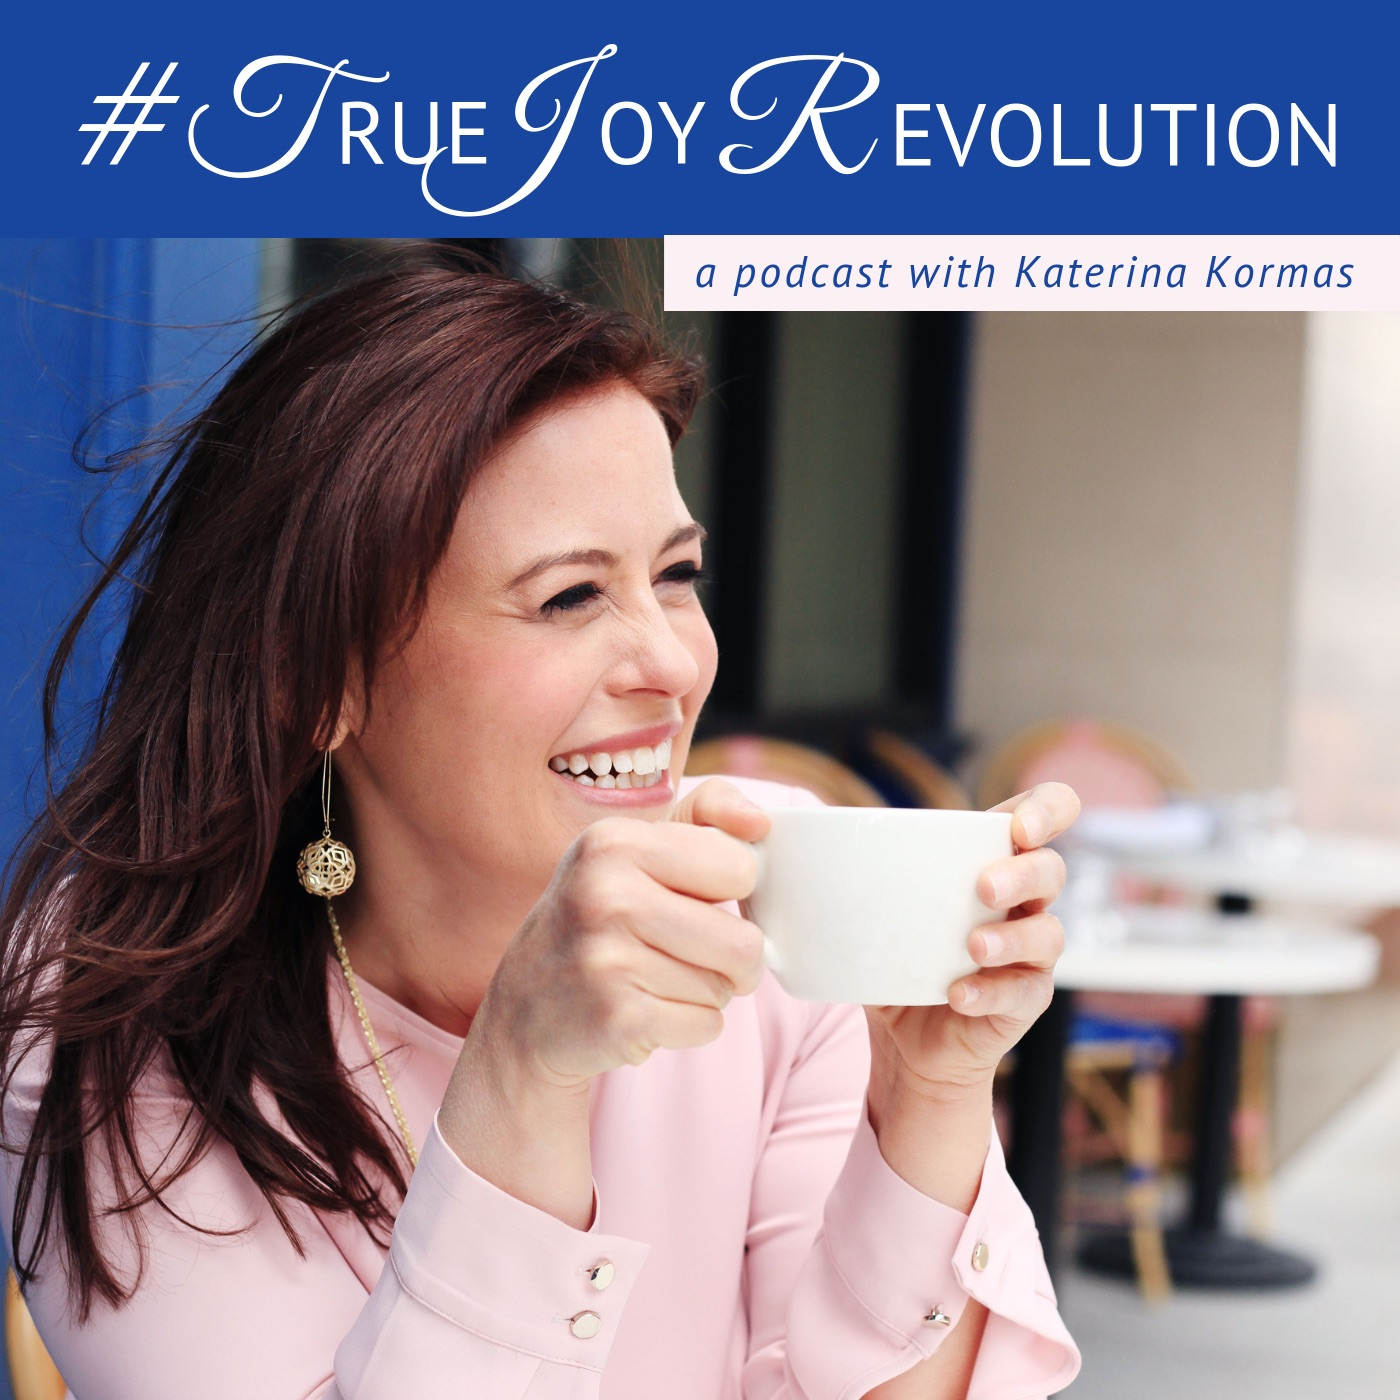 Episode #007: Karen Kiess on Shifting Your Mindset to Being Open to New Opportunities show art